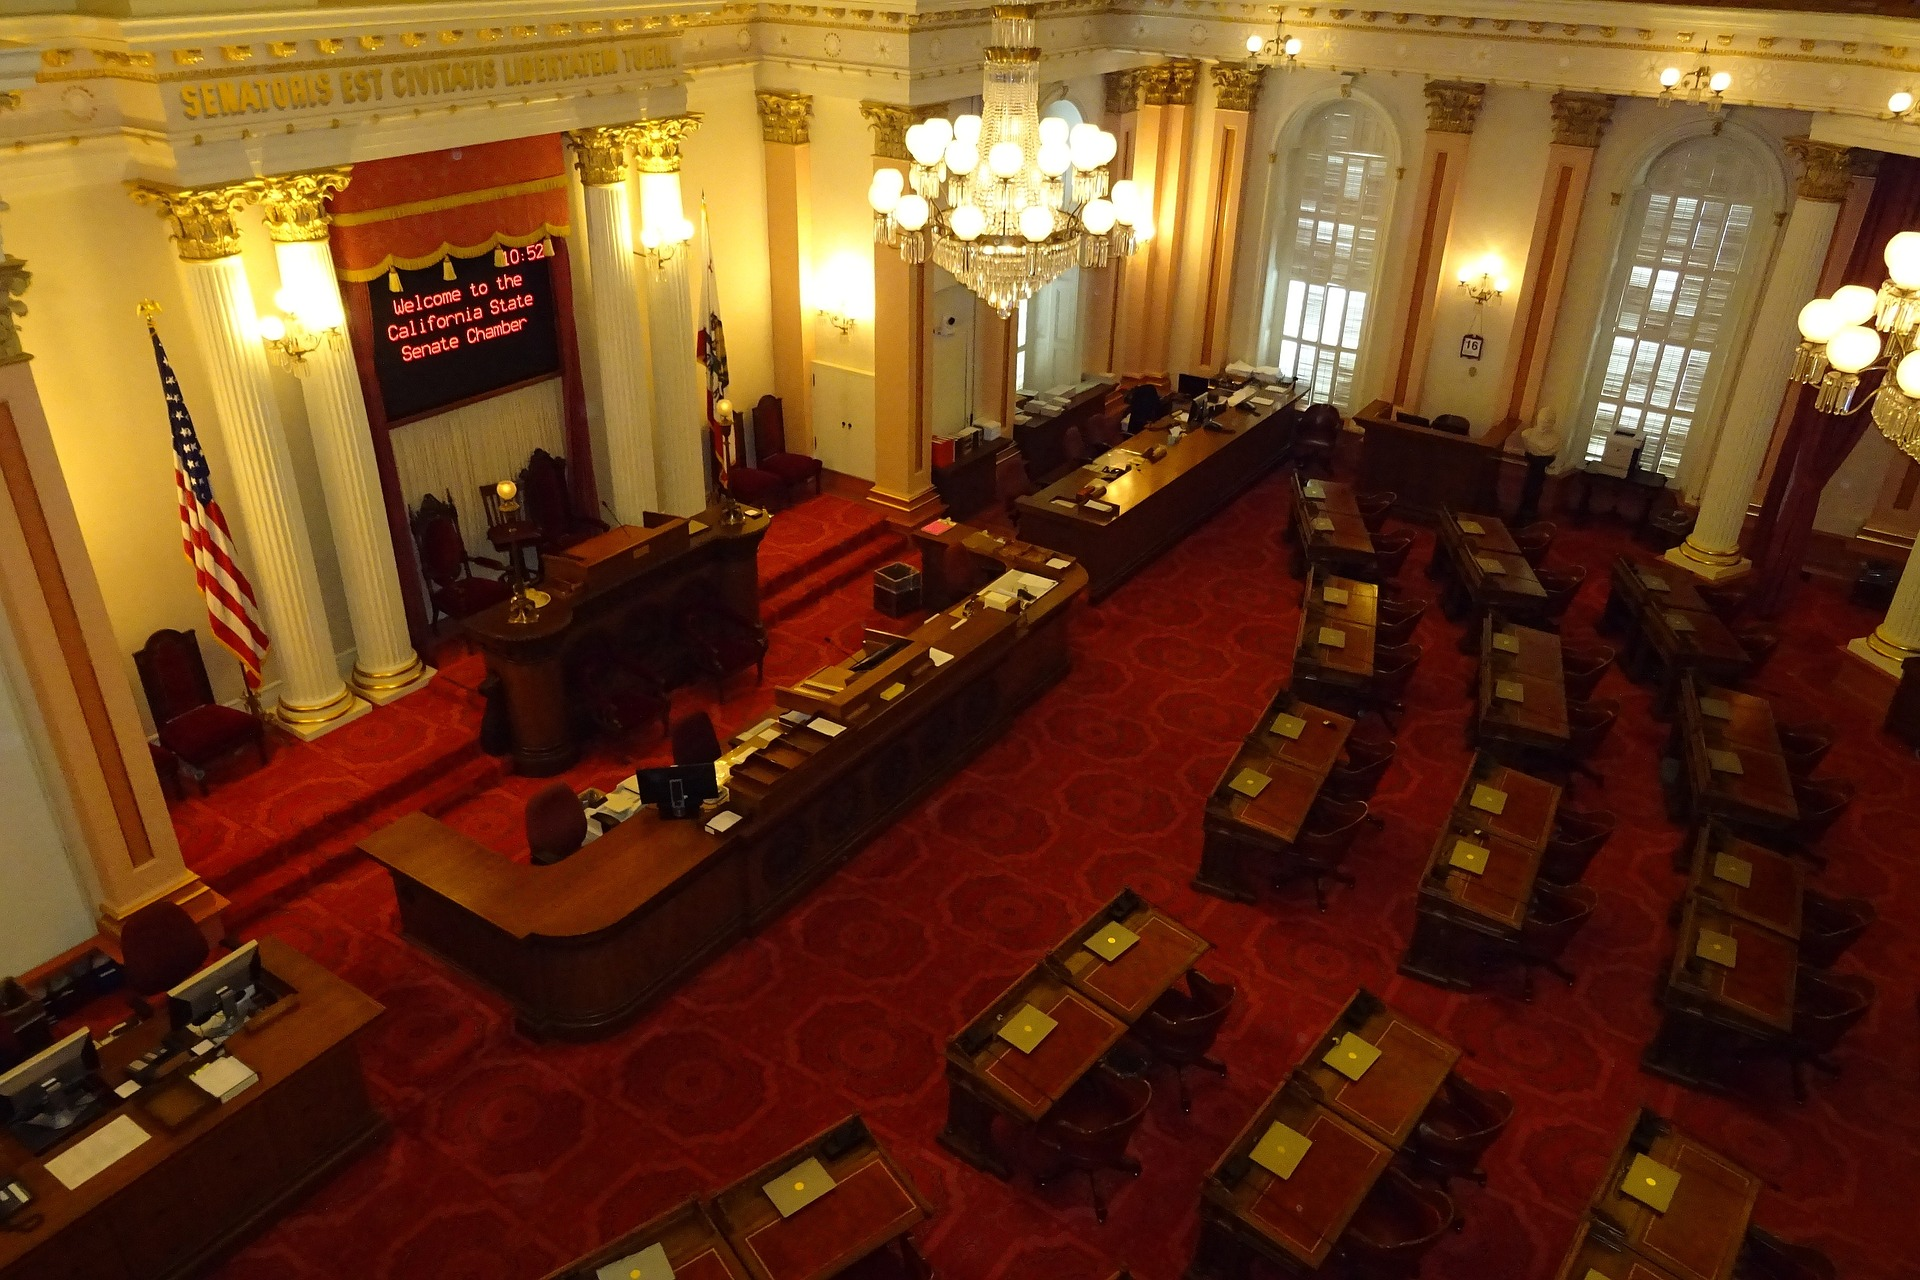 The California Senate Chamber